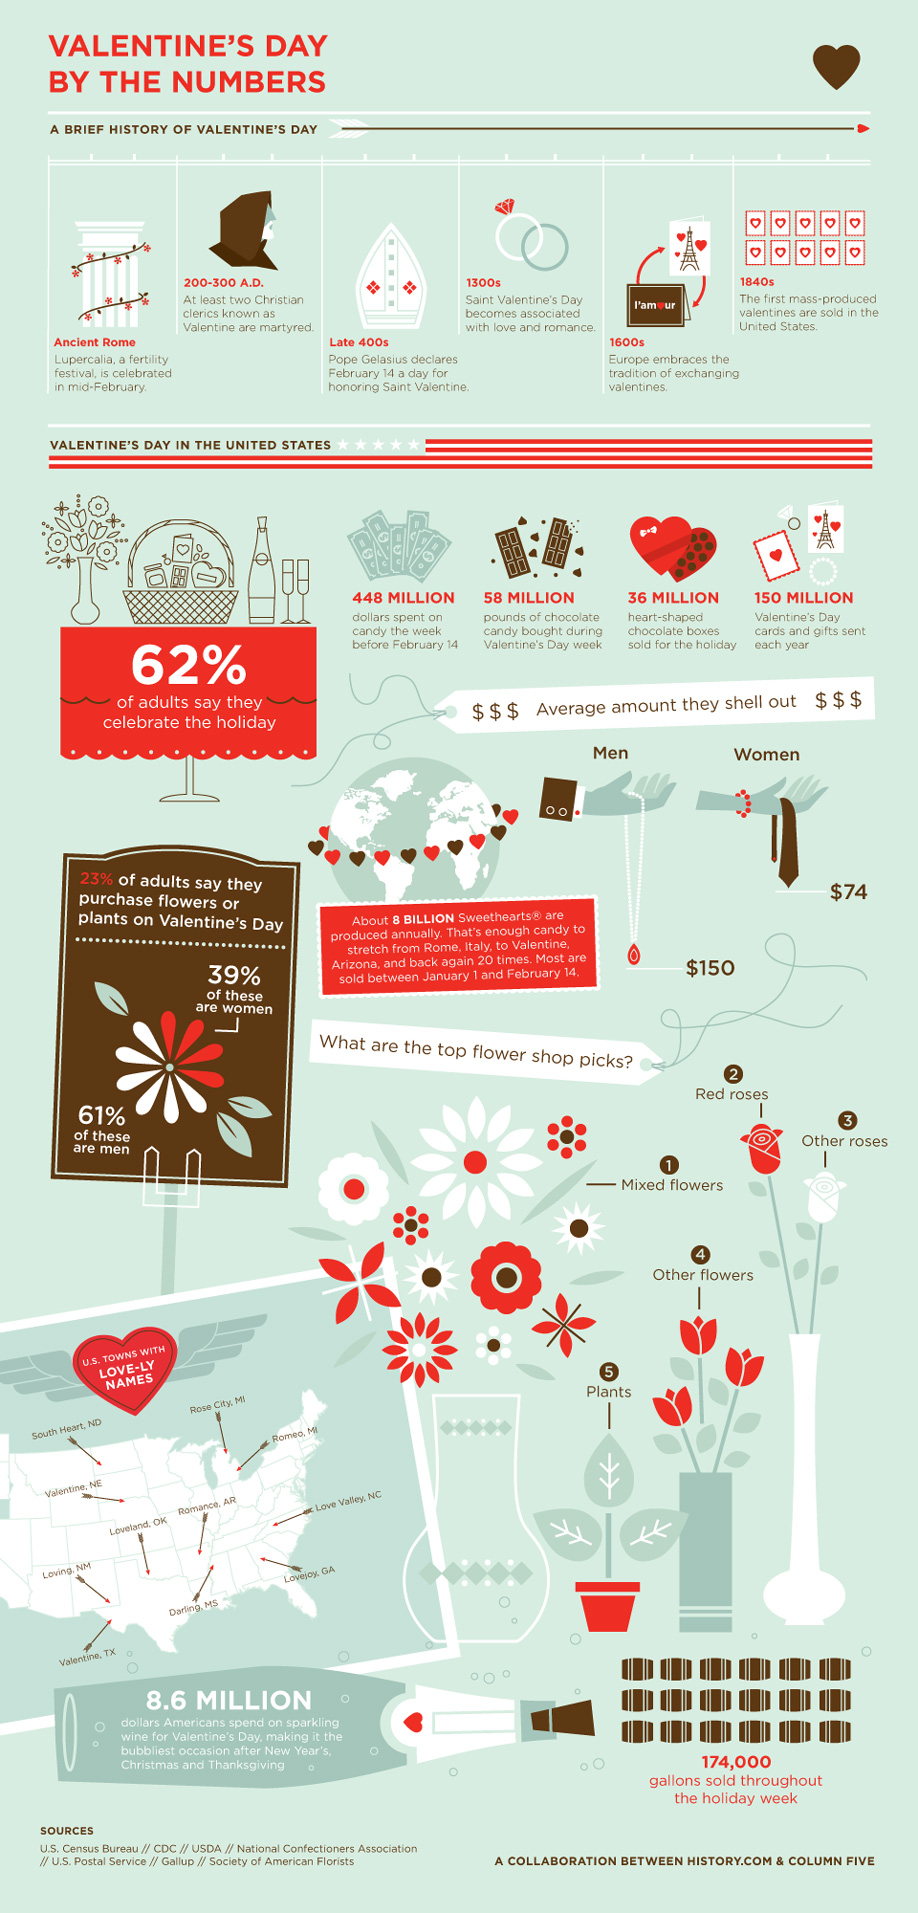 http://d2nd1faw866zkf.cloudfront.net/uploads/infographic/infographic_image_one/1321/history-infographic-valentines-day-by-the-numbers.jpg